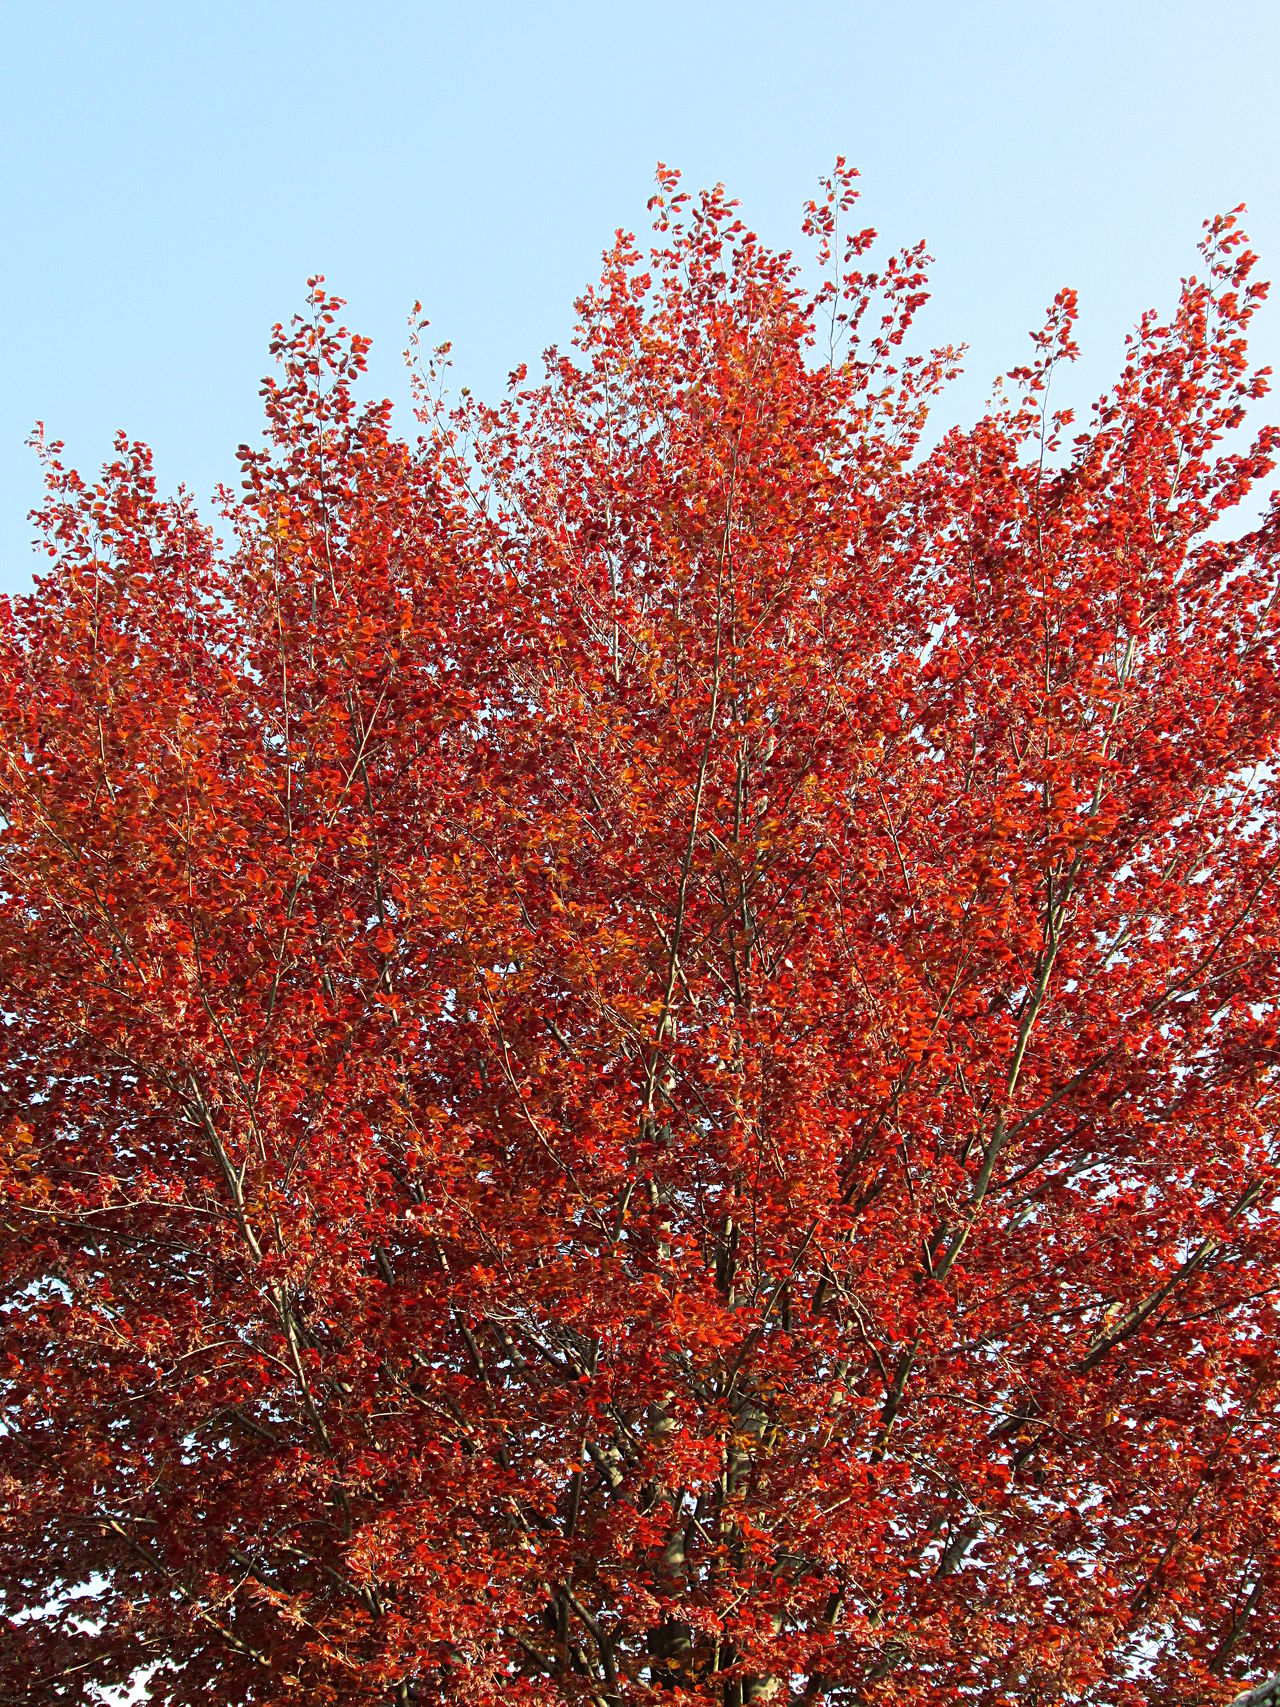 Red dry lush foliage on tree Autumn Beauty In Nature Branch Close-up Crown Day Dry Fall Foliage Freshness Growth Leaves Low Angle View Nature No People October Outdoors Red Tree